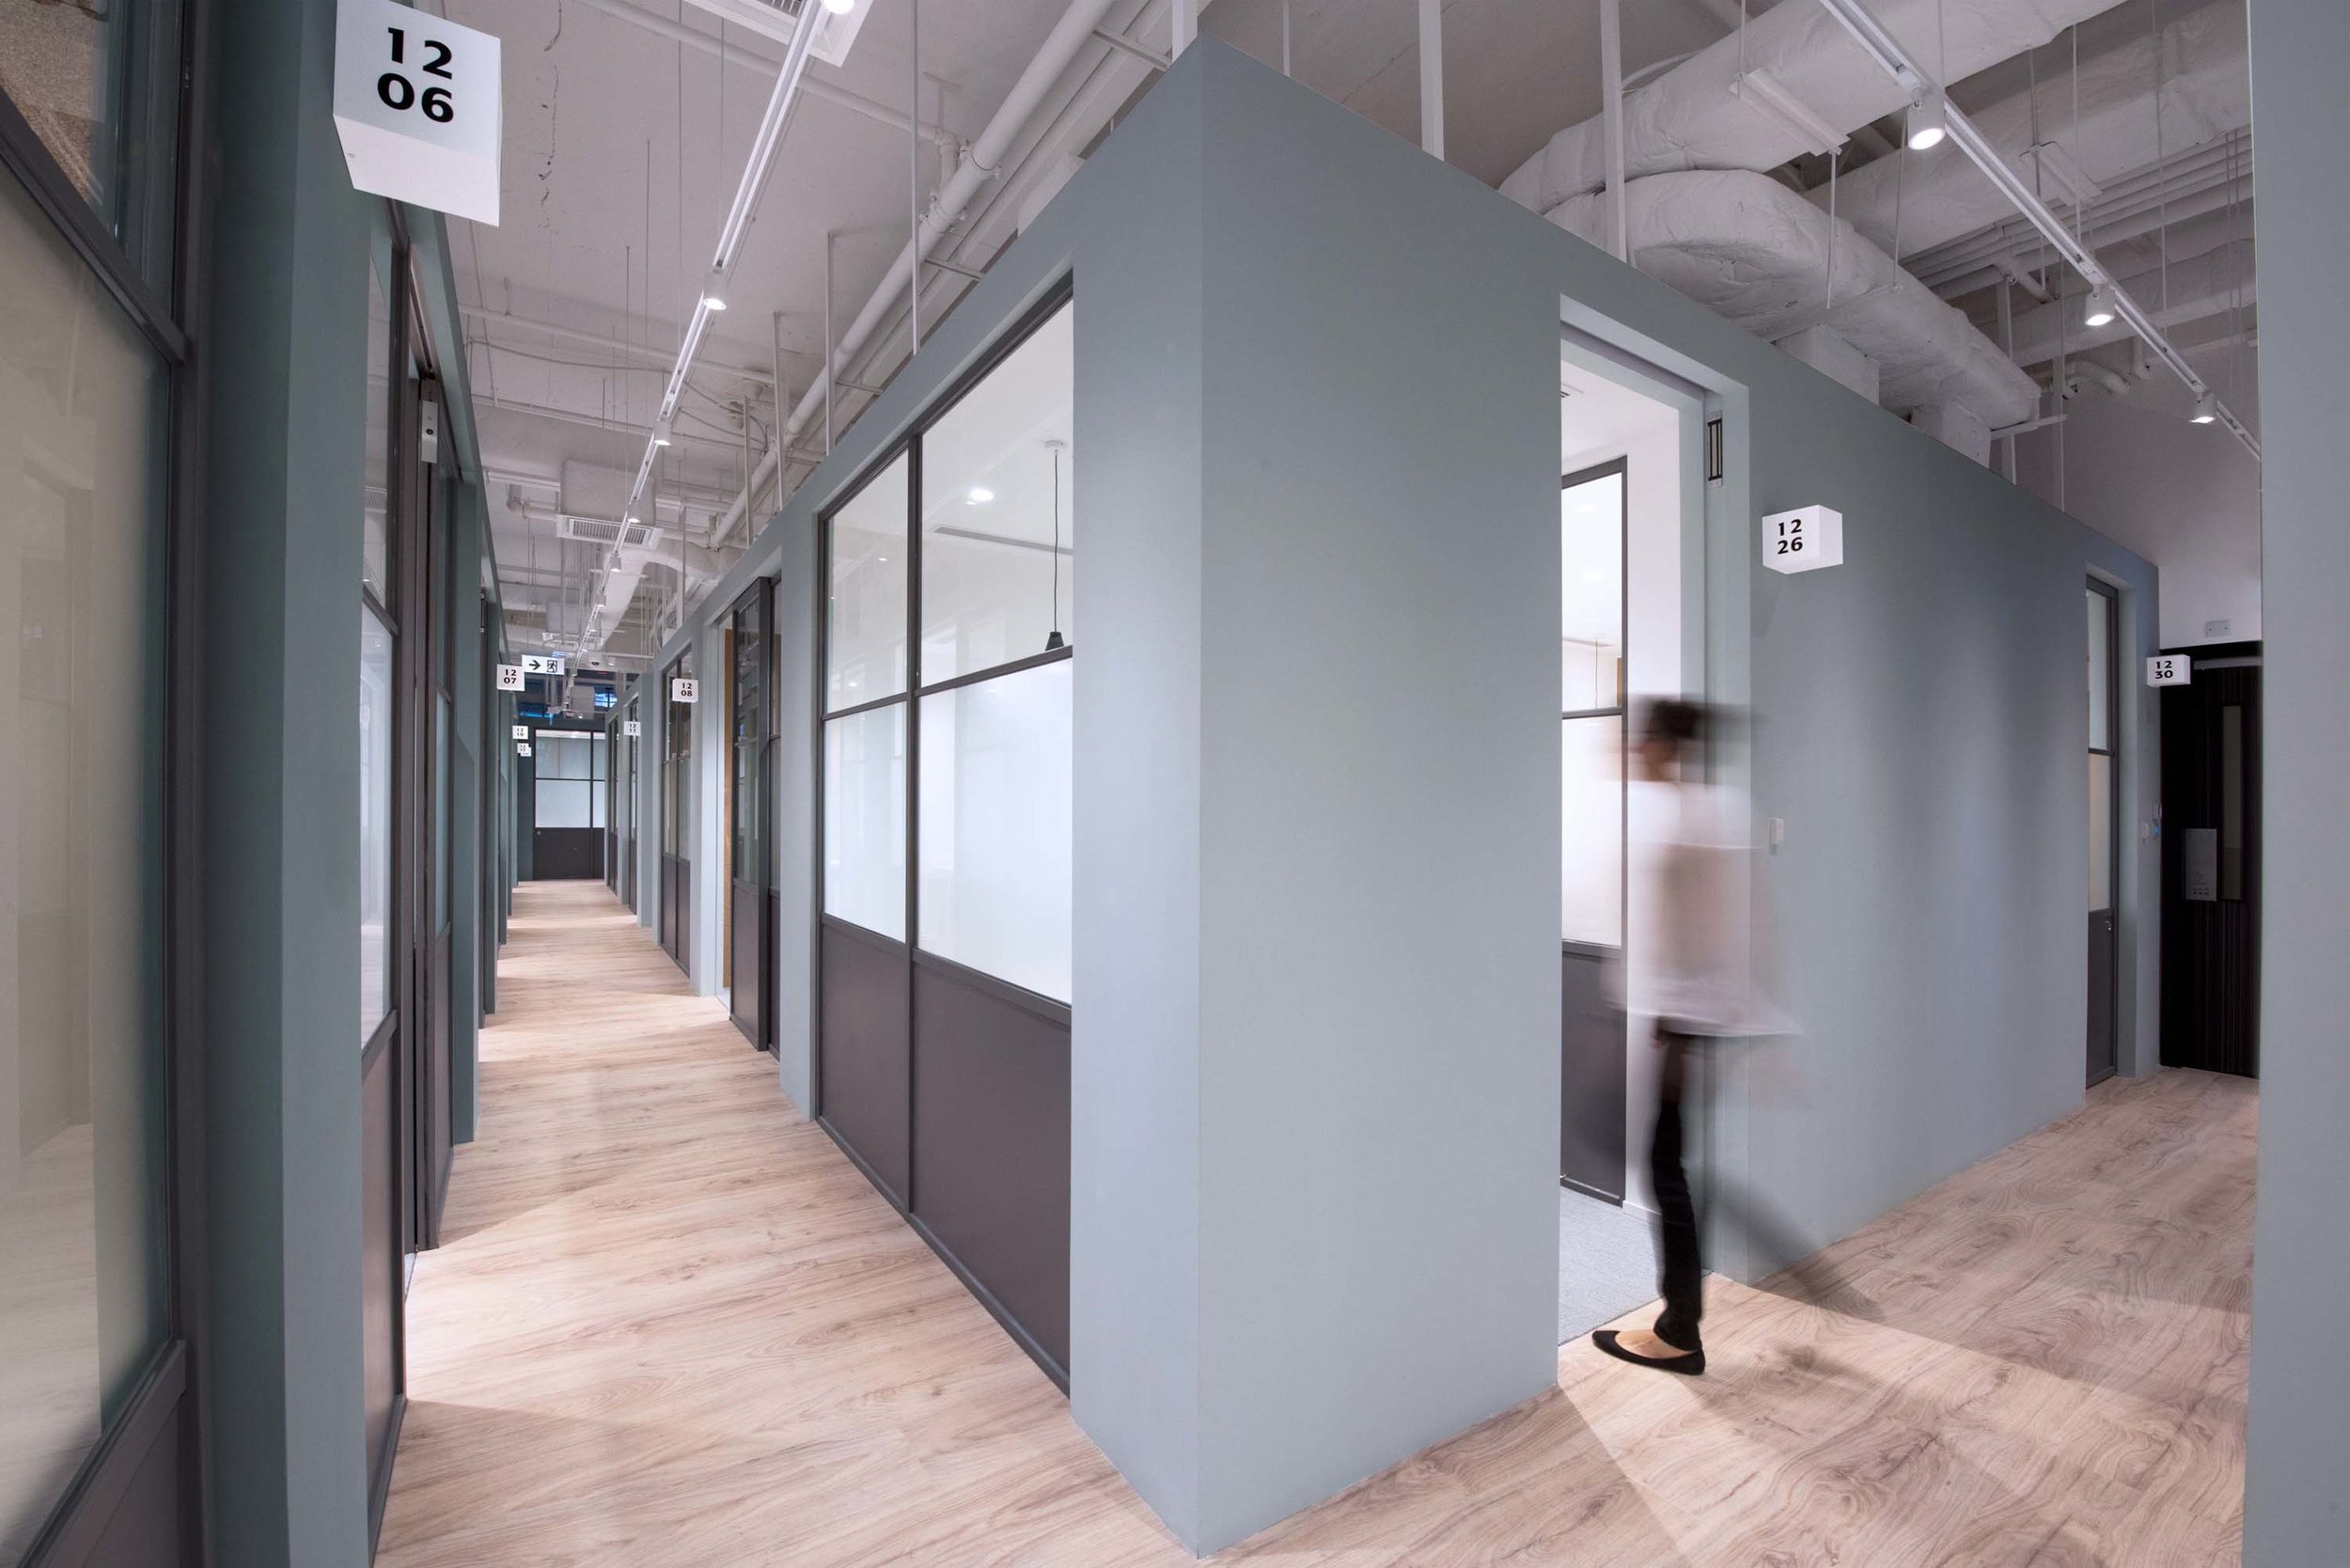 The space contains 74 private offices that can hold between two and 12 employees, as well as 80 hot desks. Offices and desks can be booked on a monthly or daily basis, according to the tenant's needs.